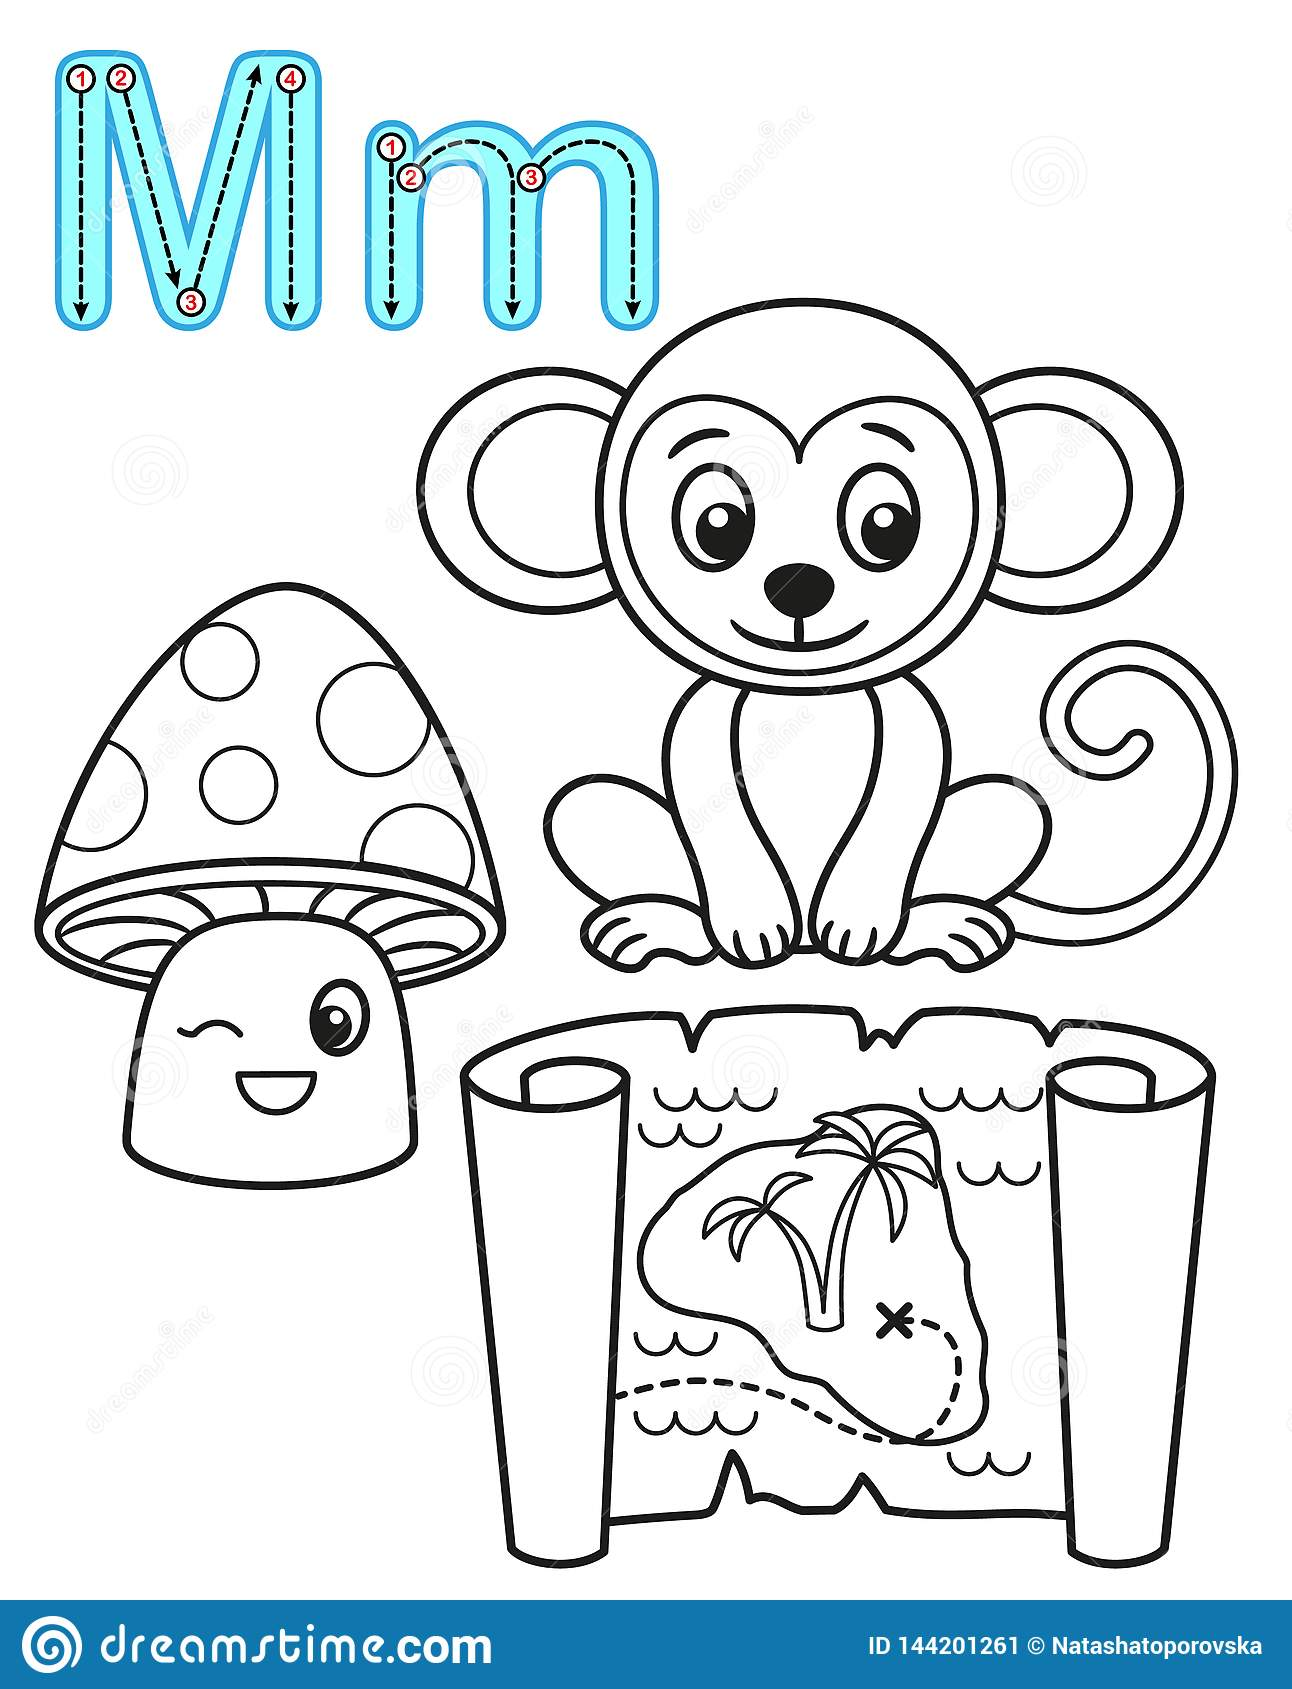 Cute Monkey Coloring Pages - Coloring Home | 1689x1292